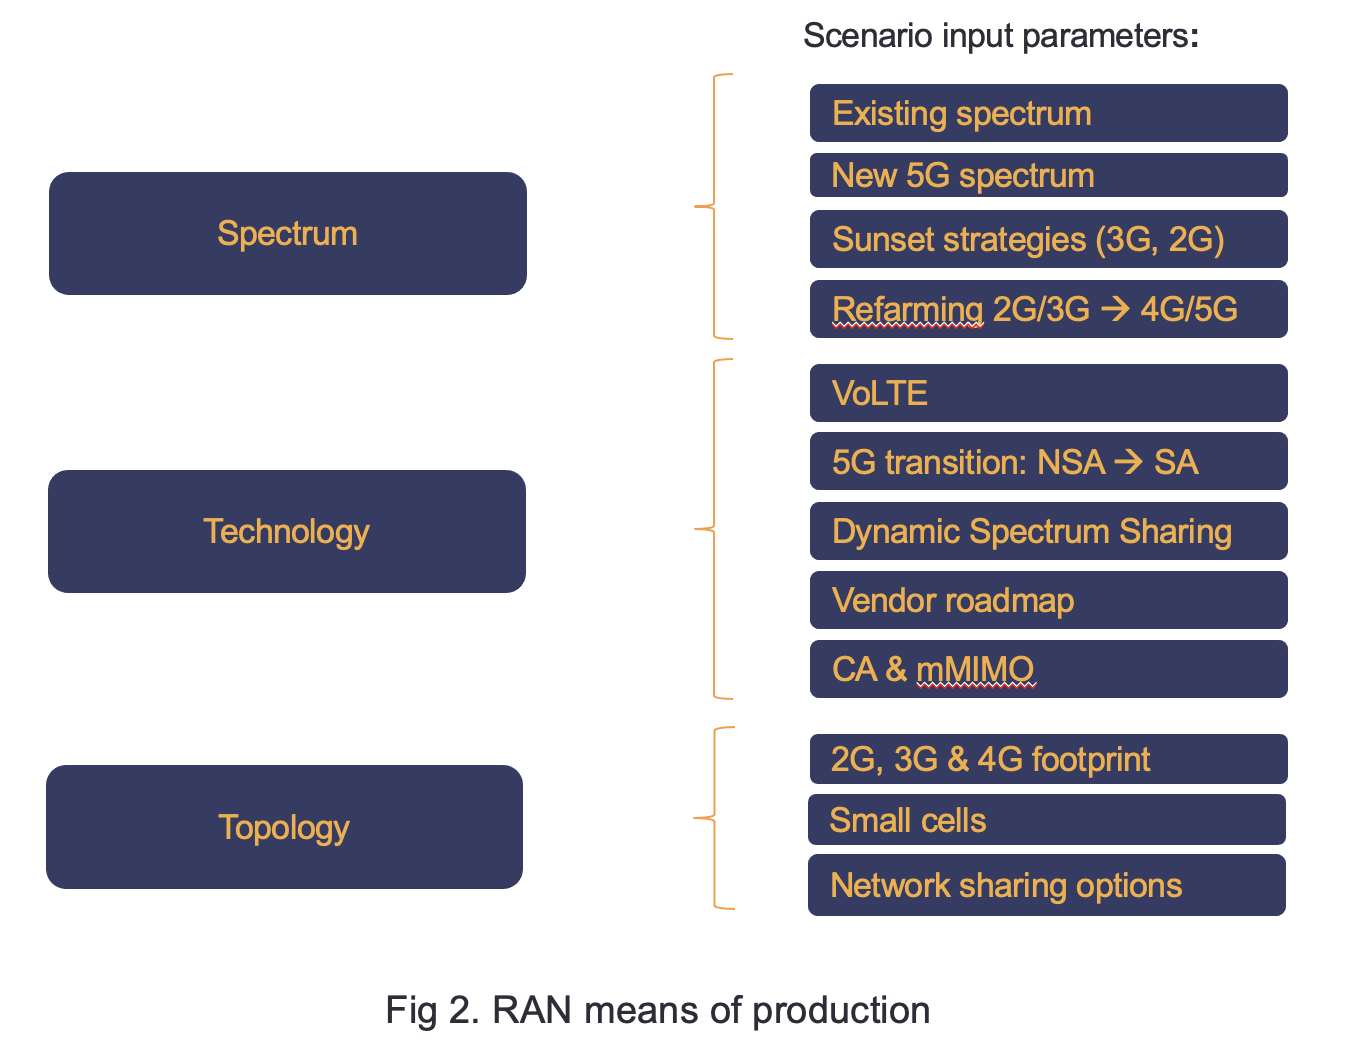 RAN means of production